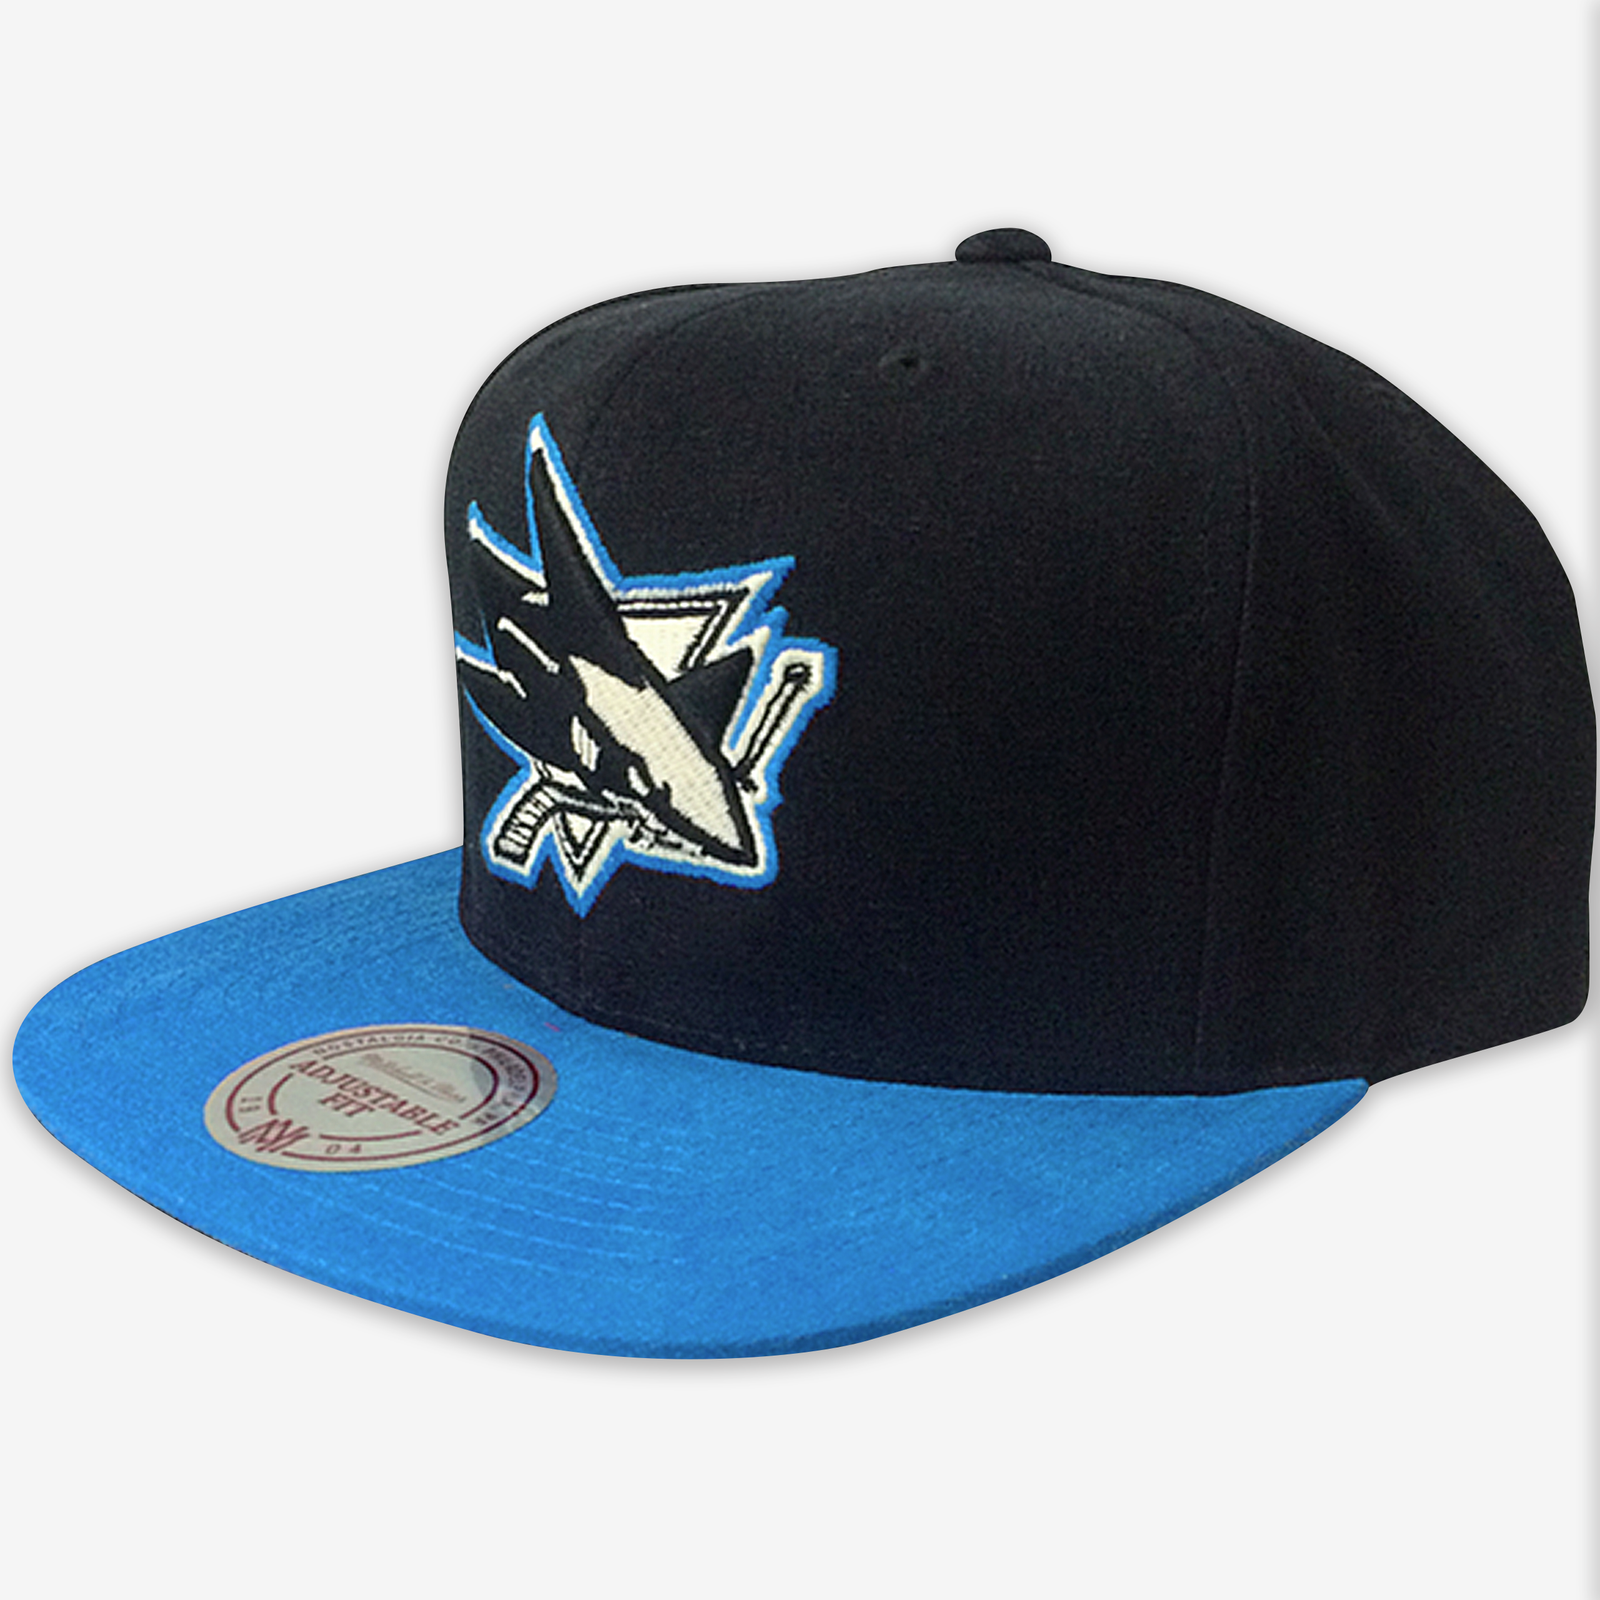 San Jose Sharks Mitchell & Ness Snapback